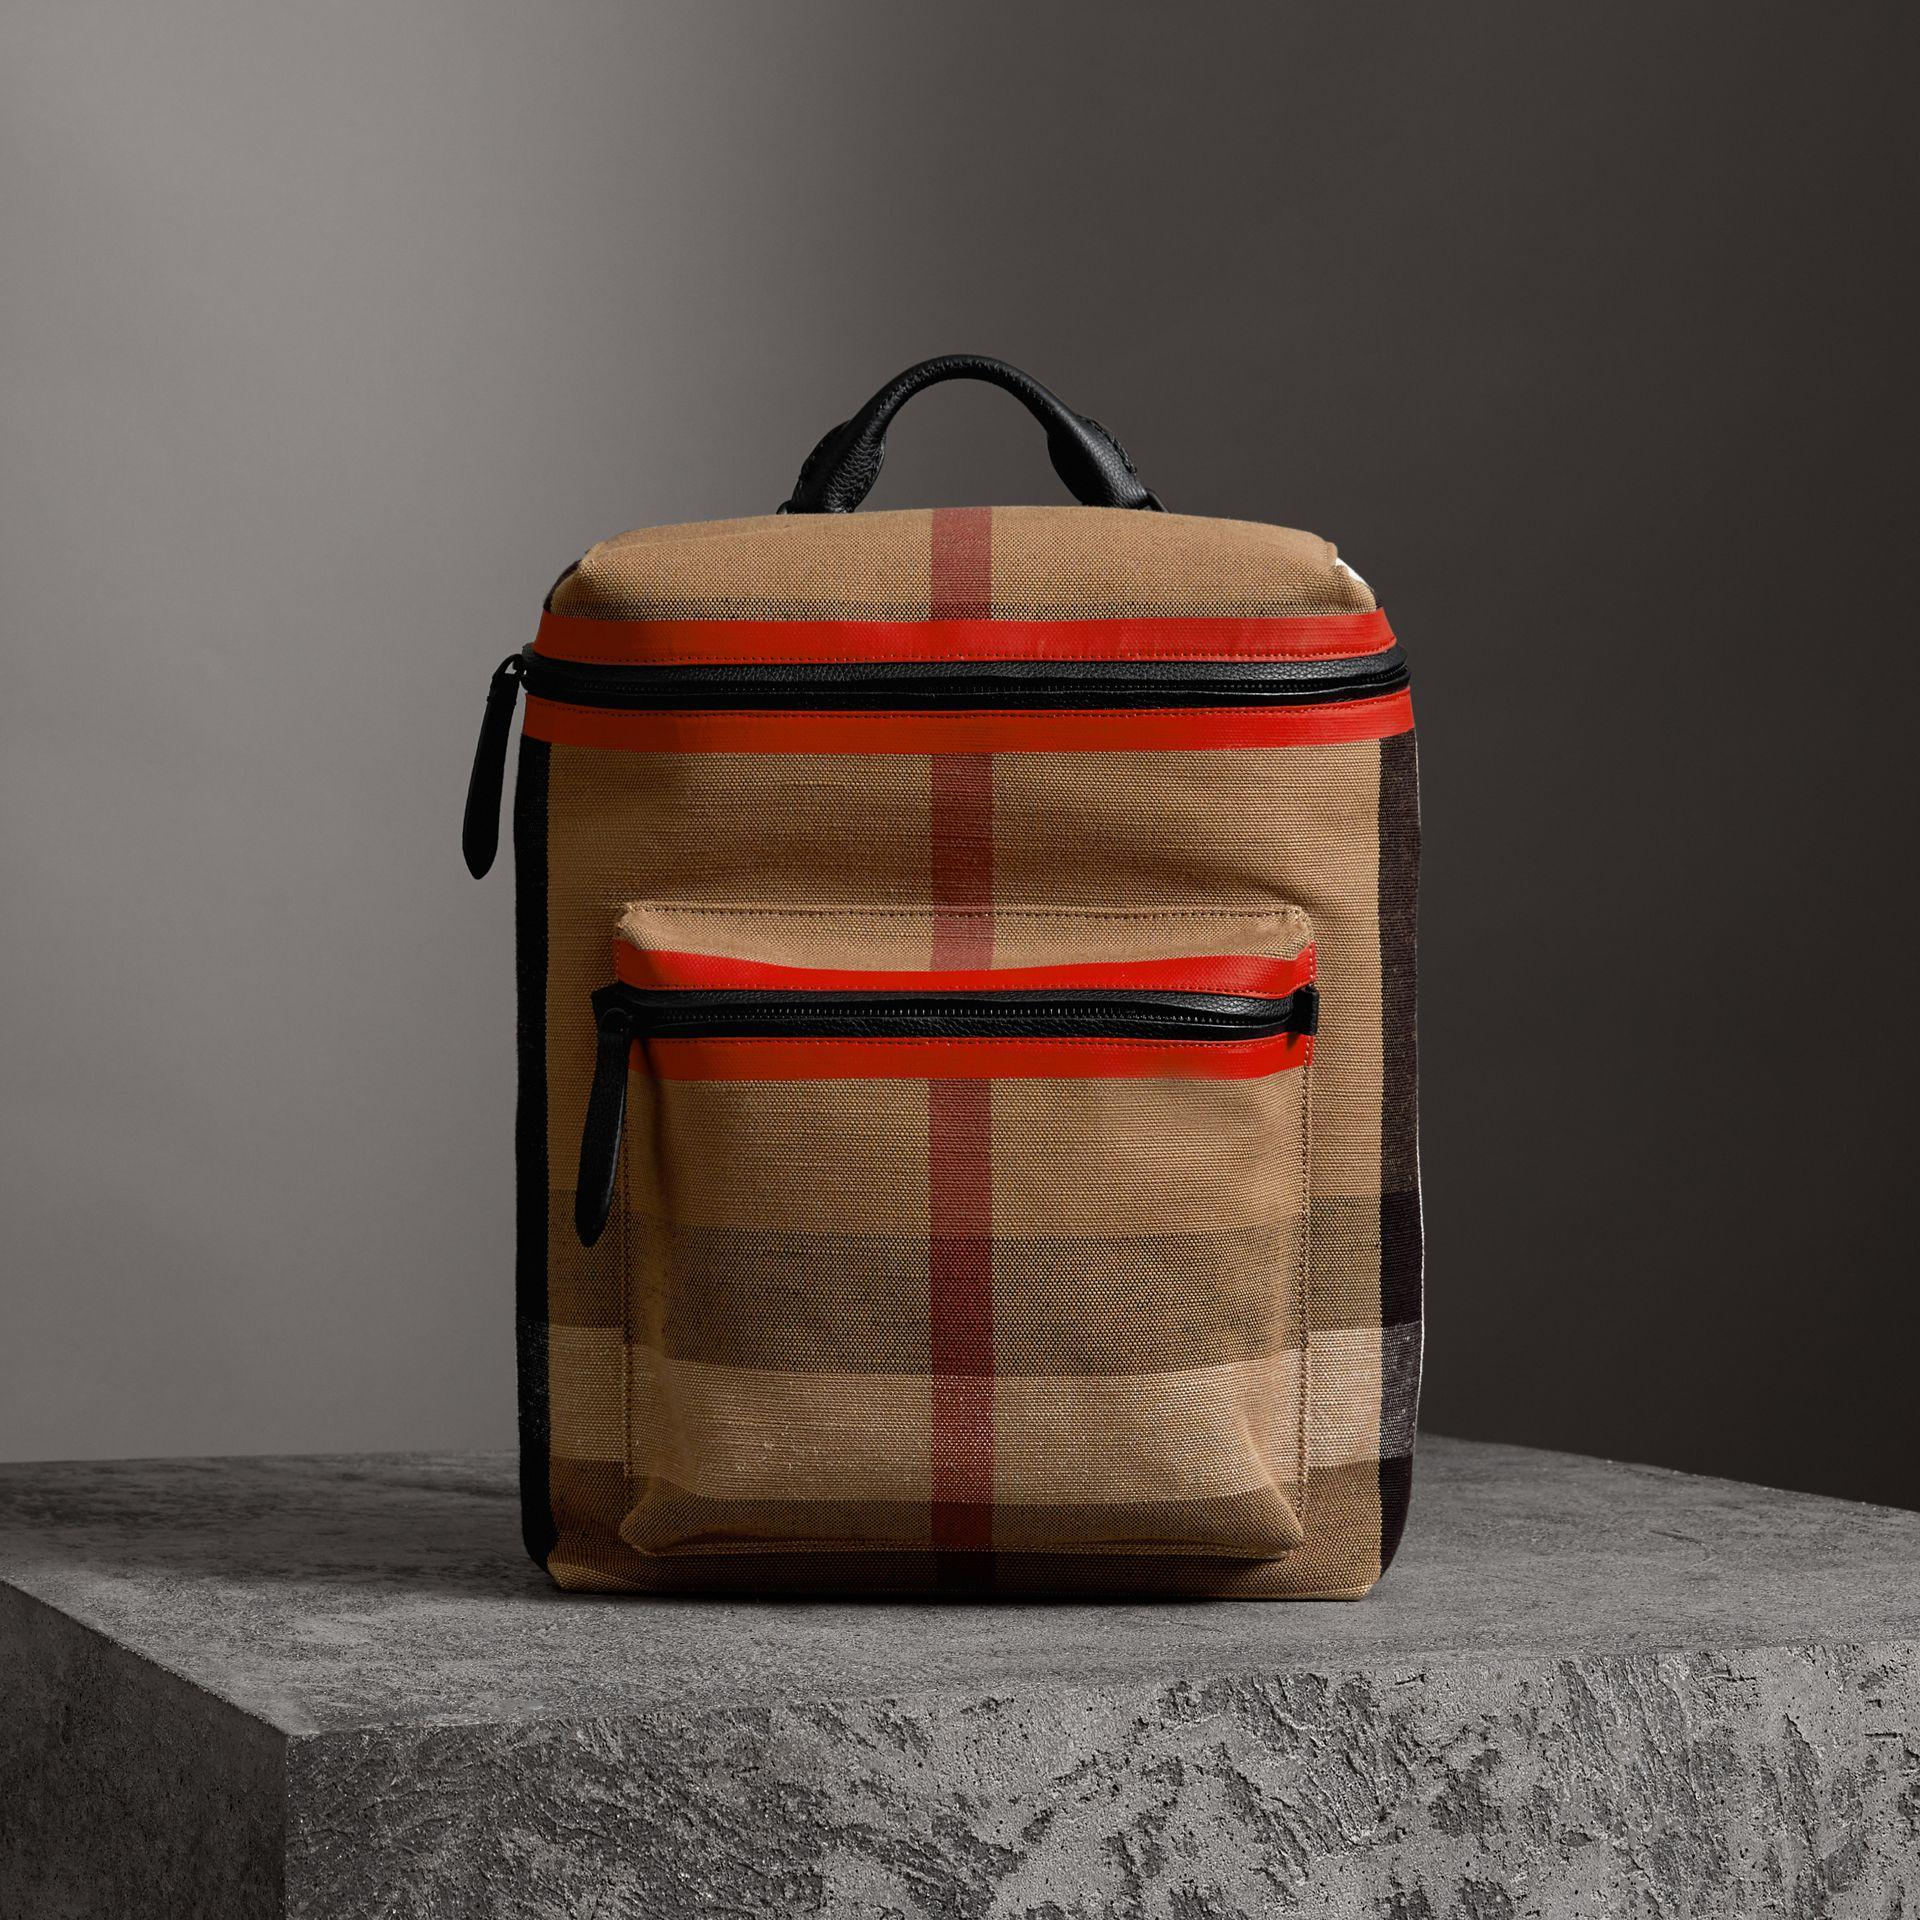 Burberry Zip-top Leather Trim Canvas Check Backpack In Military Red/camel